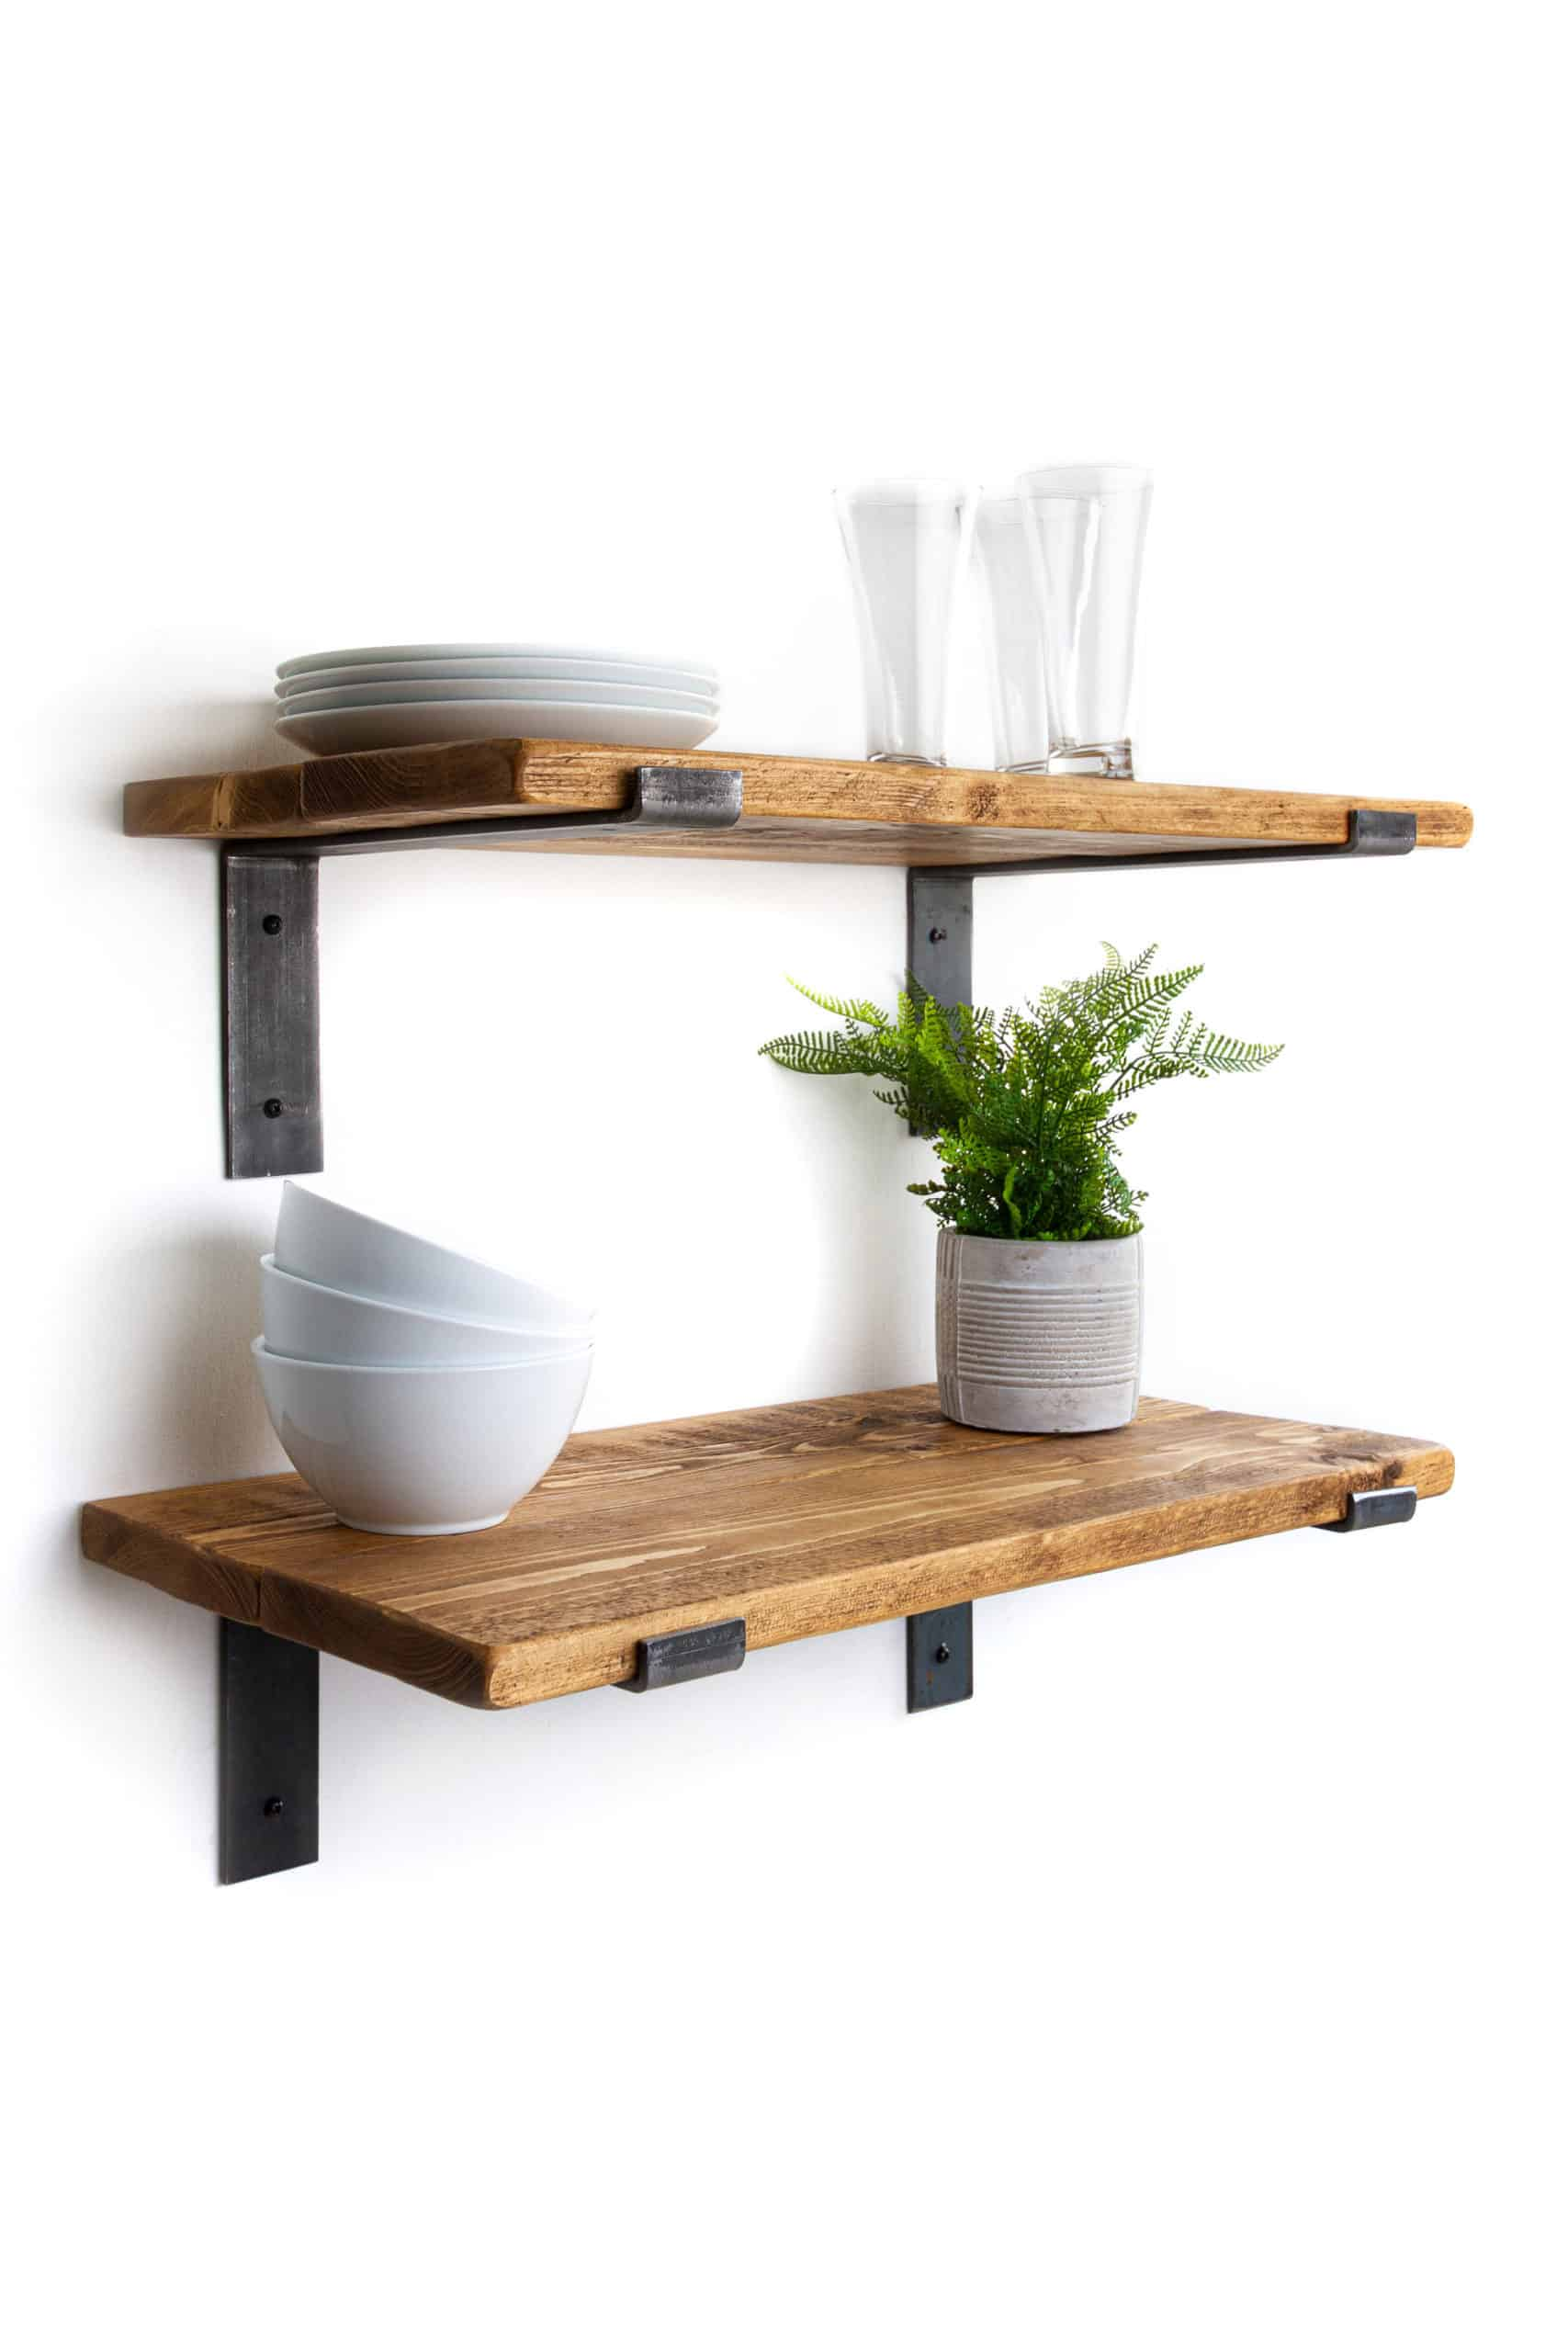 Rustic Shelves 200cm deep, 20.20cm thick handcrafted using solid wood, with  industrial metal brackets   Kitchen Shelves